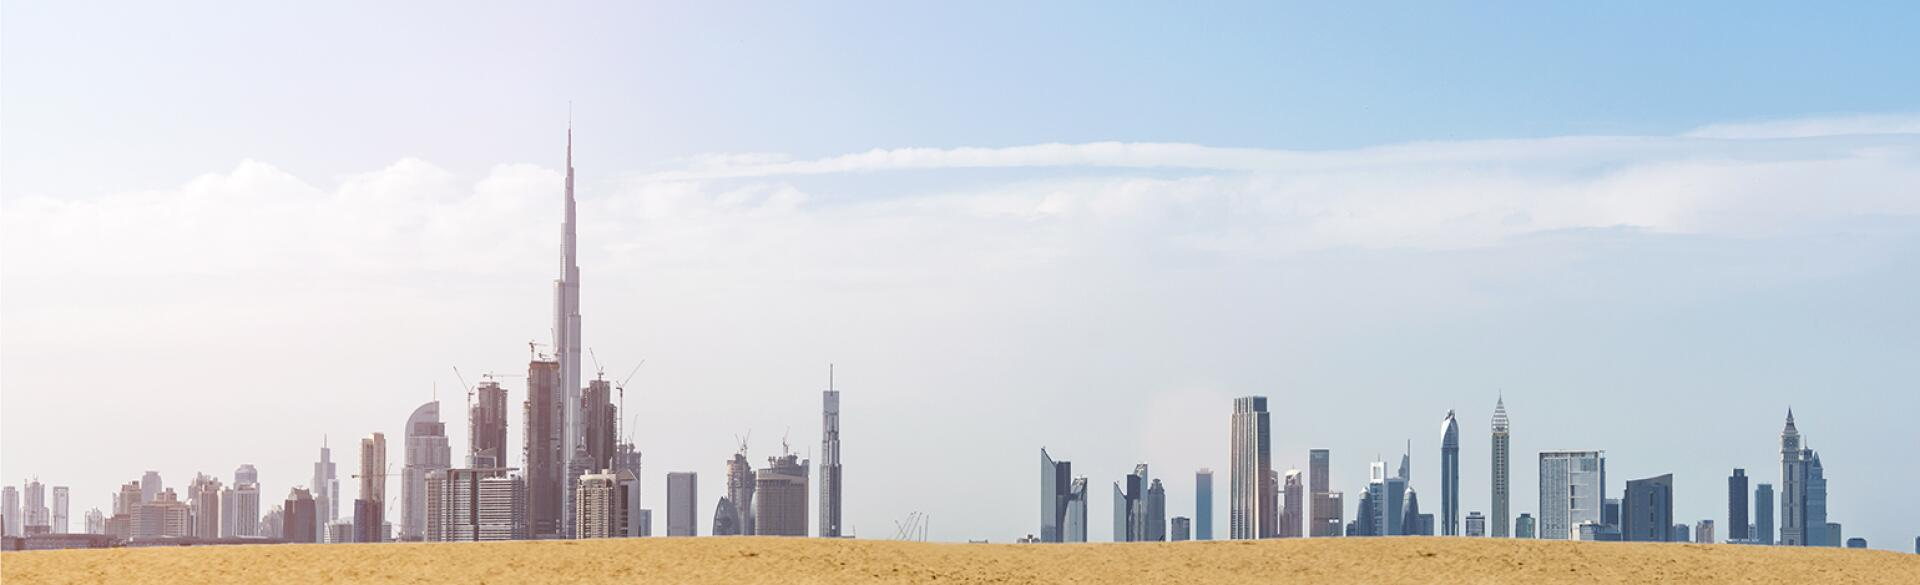 Camels walking along the dessert with the Dubai cityscape in the background